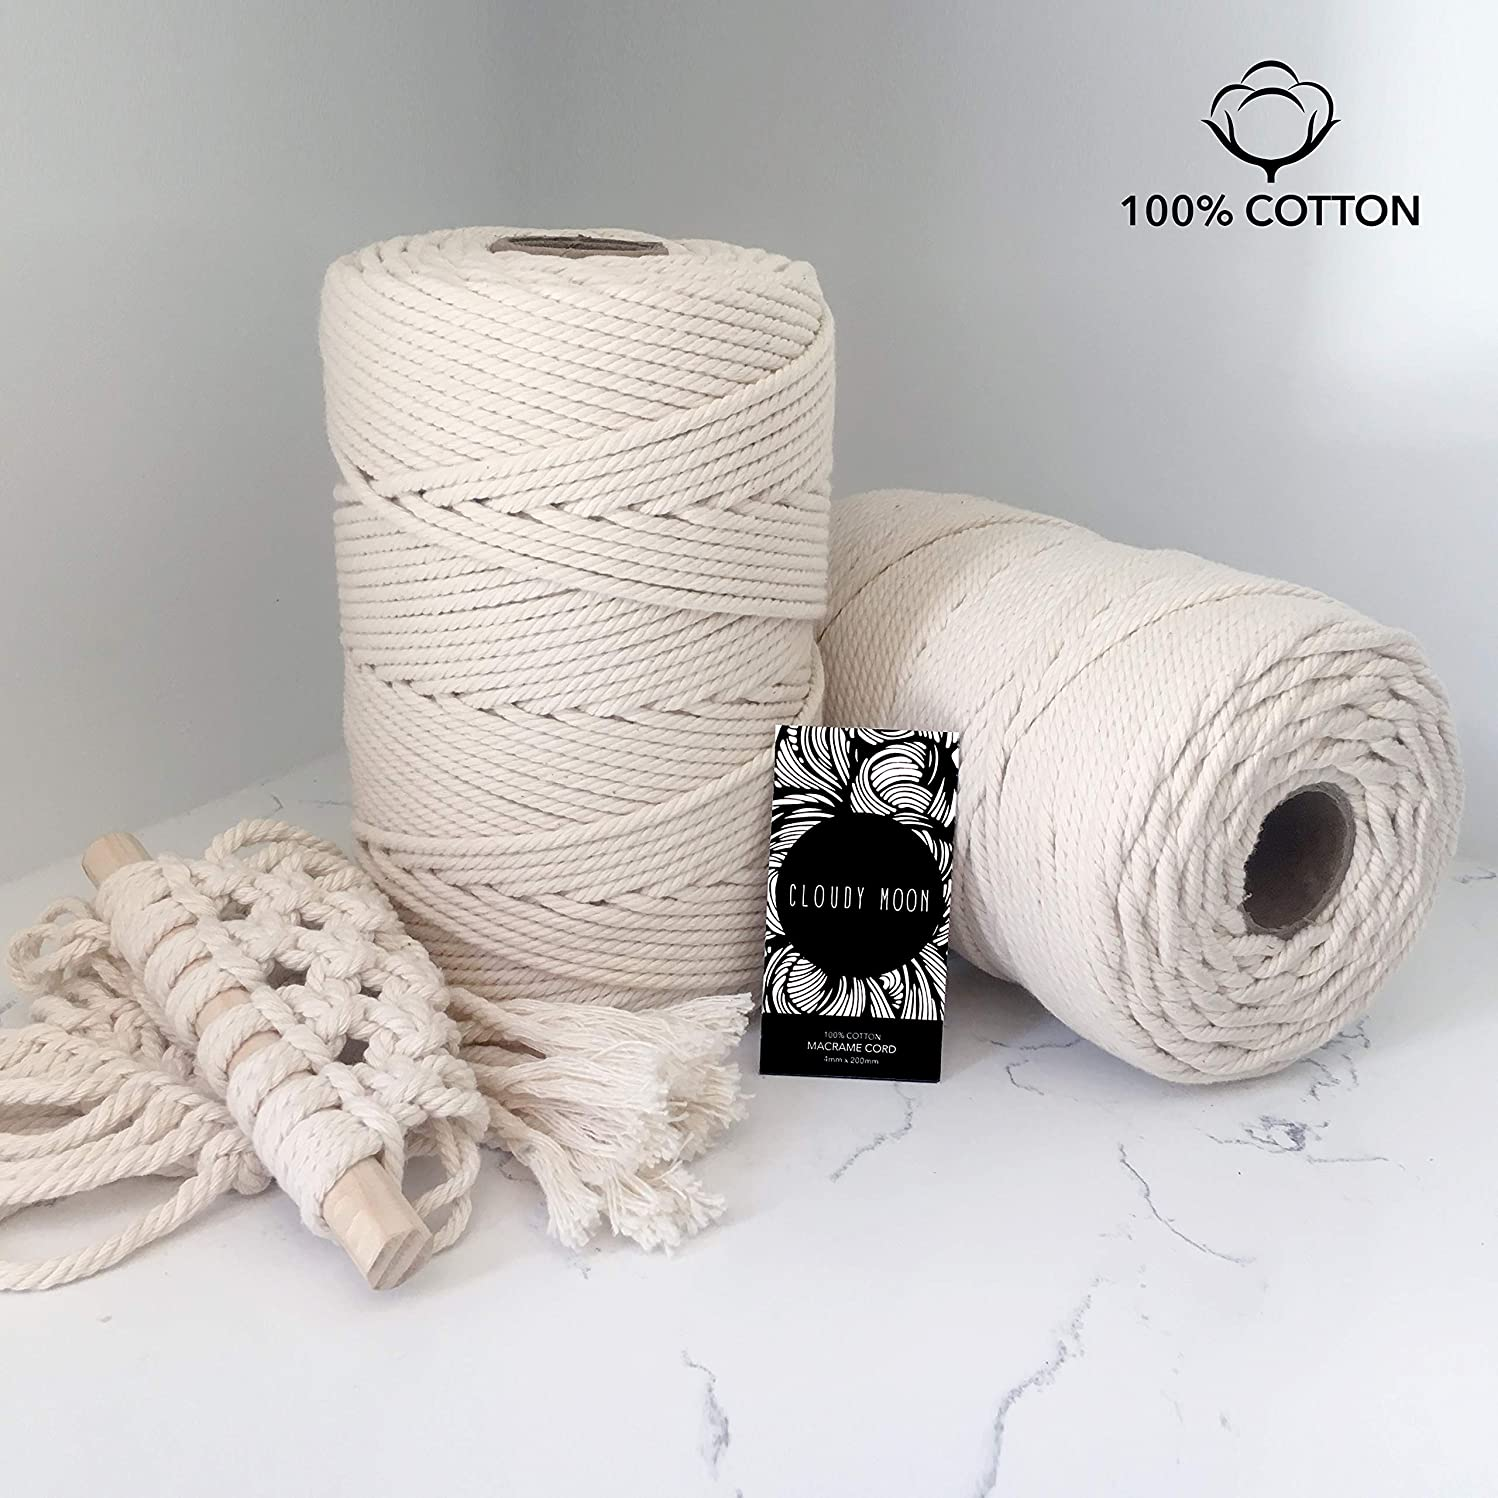 CLOUDY MOON Macramé Cord | 4mm x 100m/109yd 100% Natural UNDYED Cotton. 4 Strand Twisted Rope Perfect for Handmade Wall Hanging, Plant Hangers, Table Runners and More Crafts ivv984007